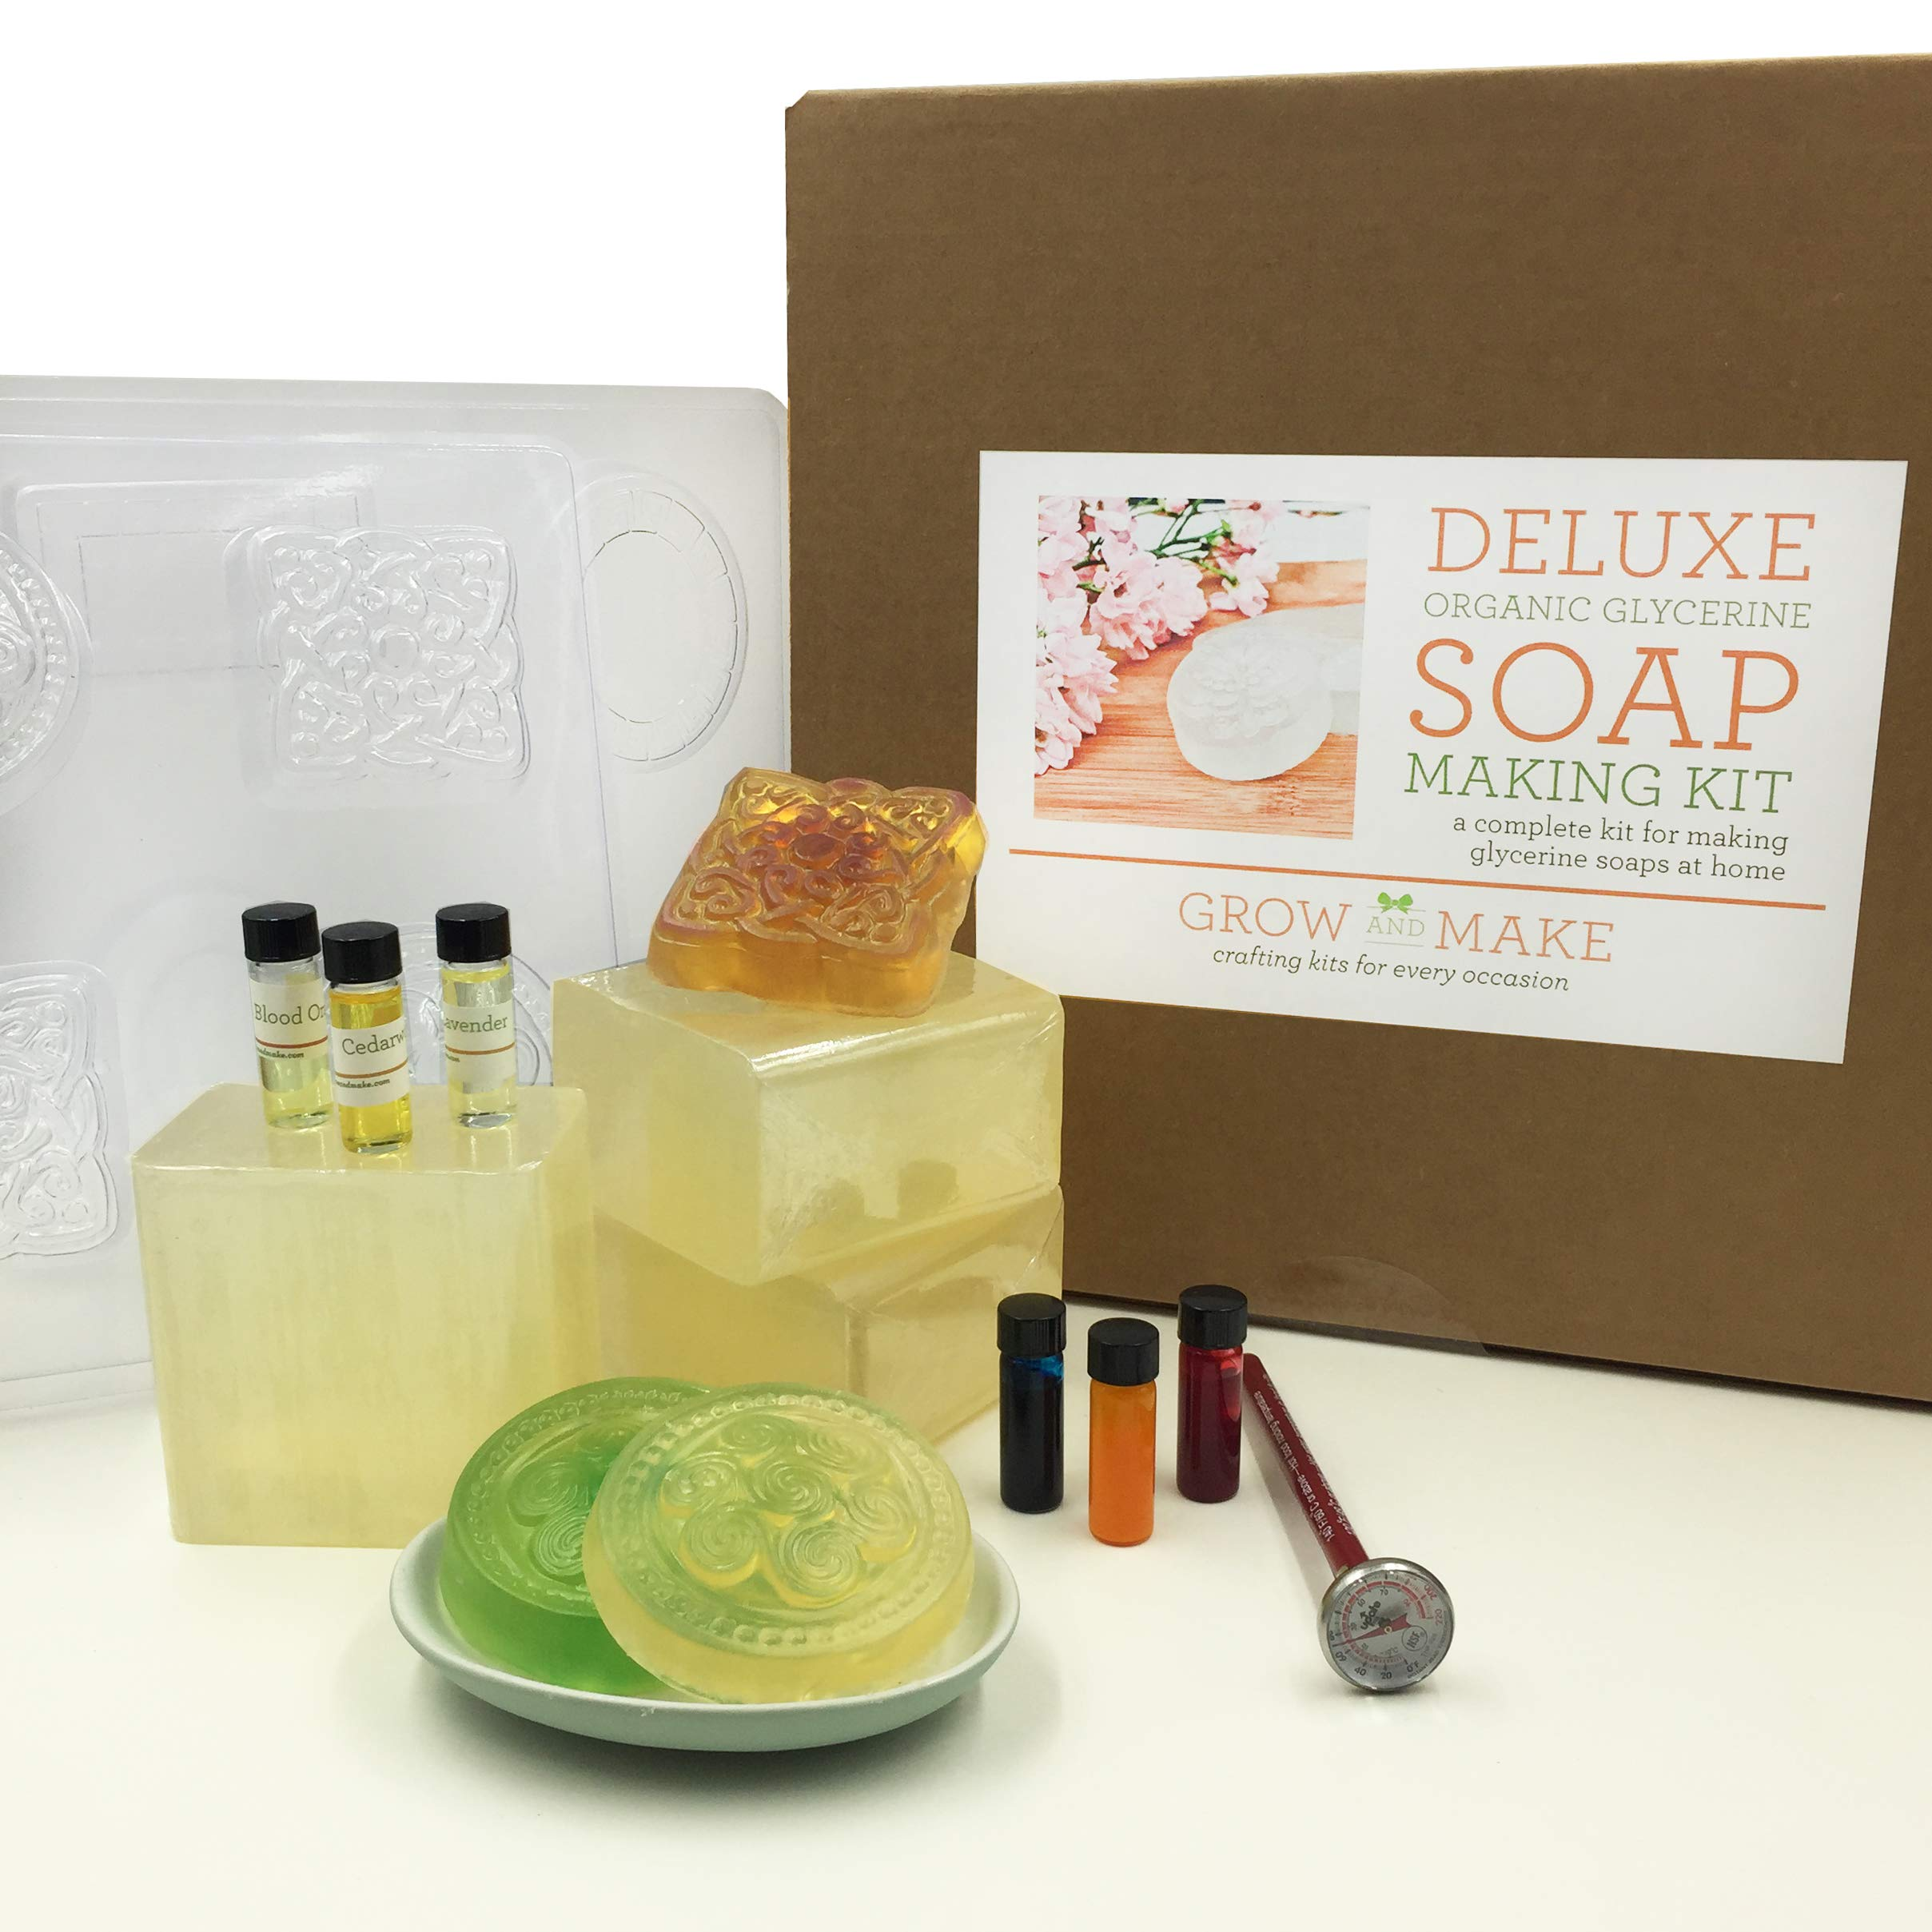 DIY Organic Glycerin Soap Making Kit - Learn How to Craft Your Own Clear Glycerin Soap Bars